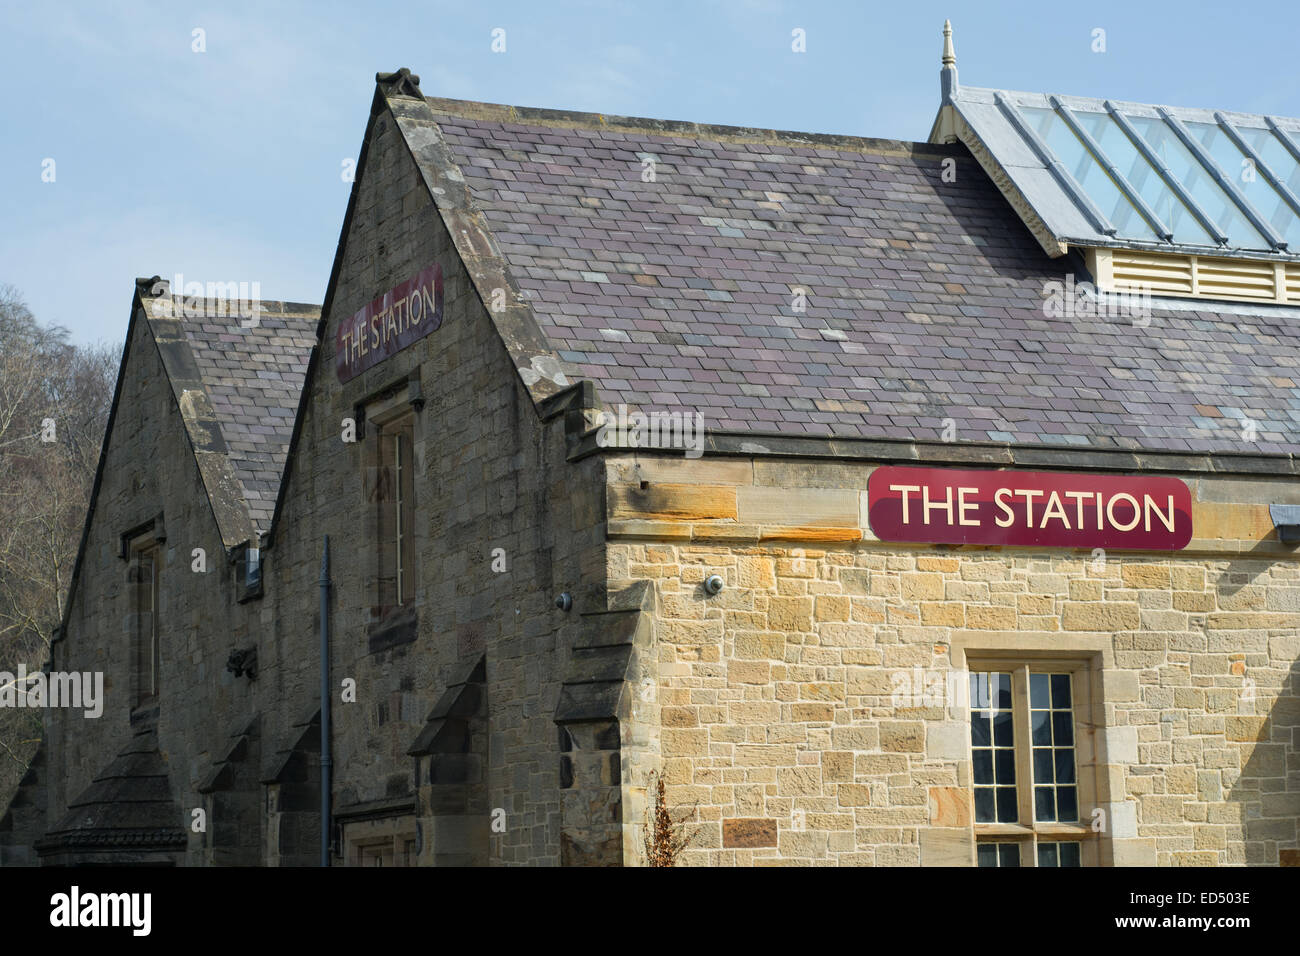 The Station at Richmond in North Yorkshire - Stock Image